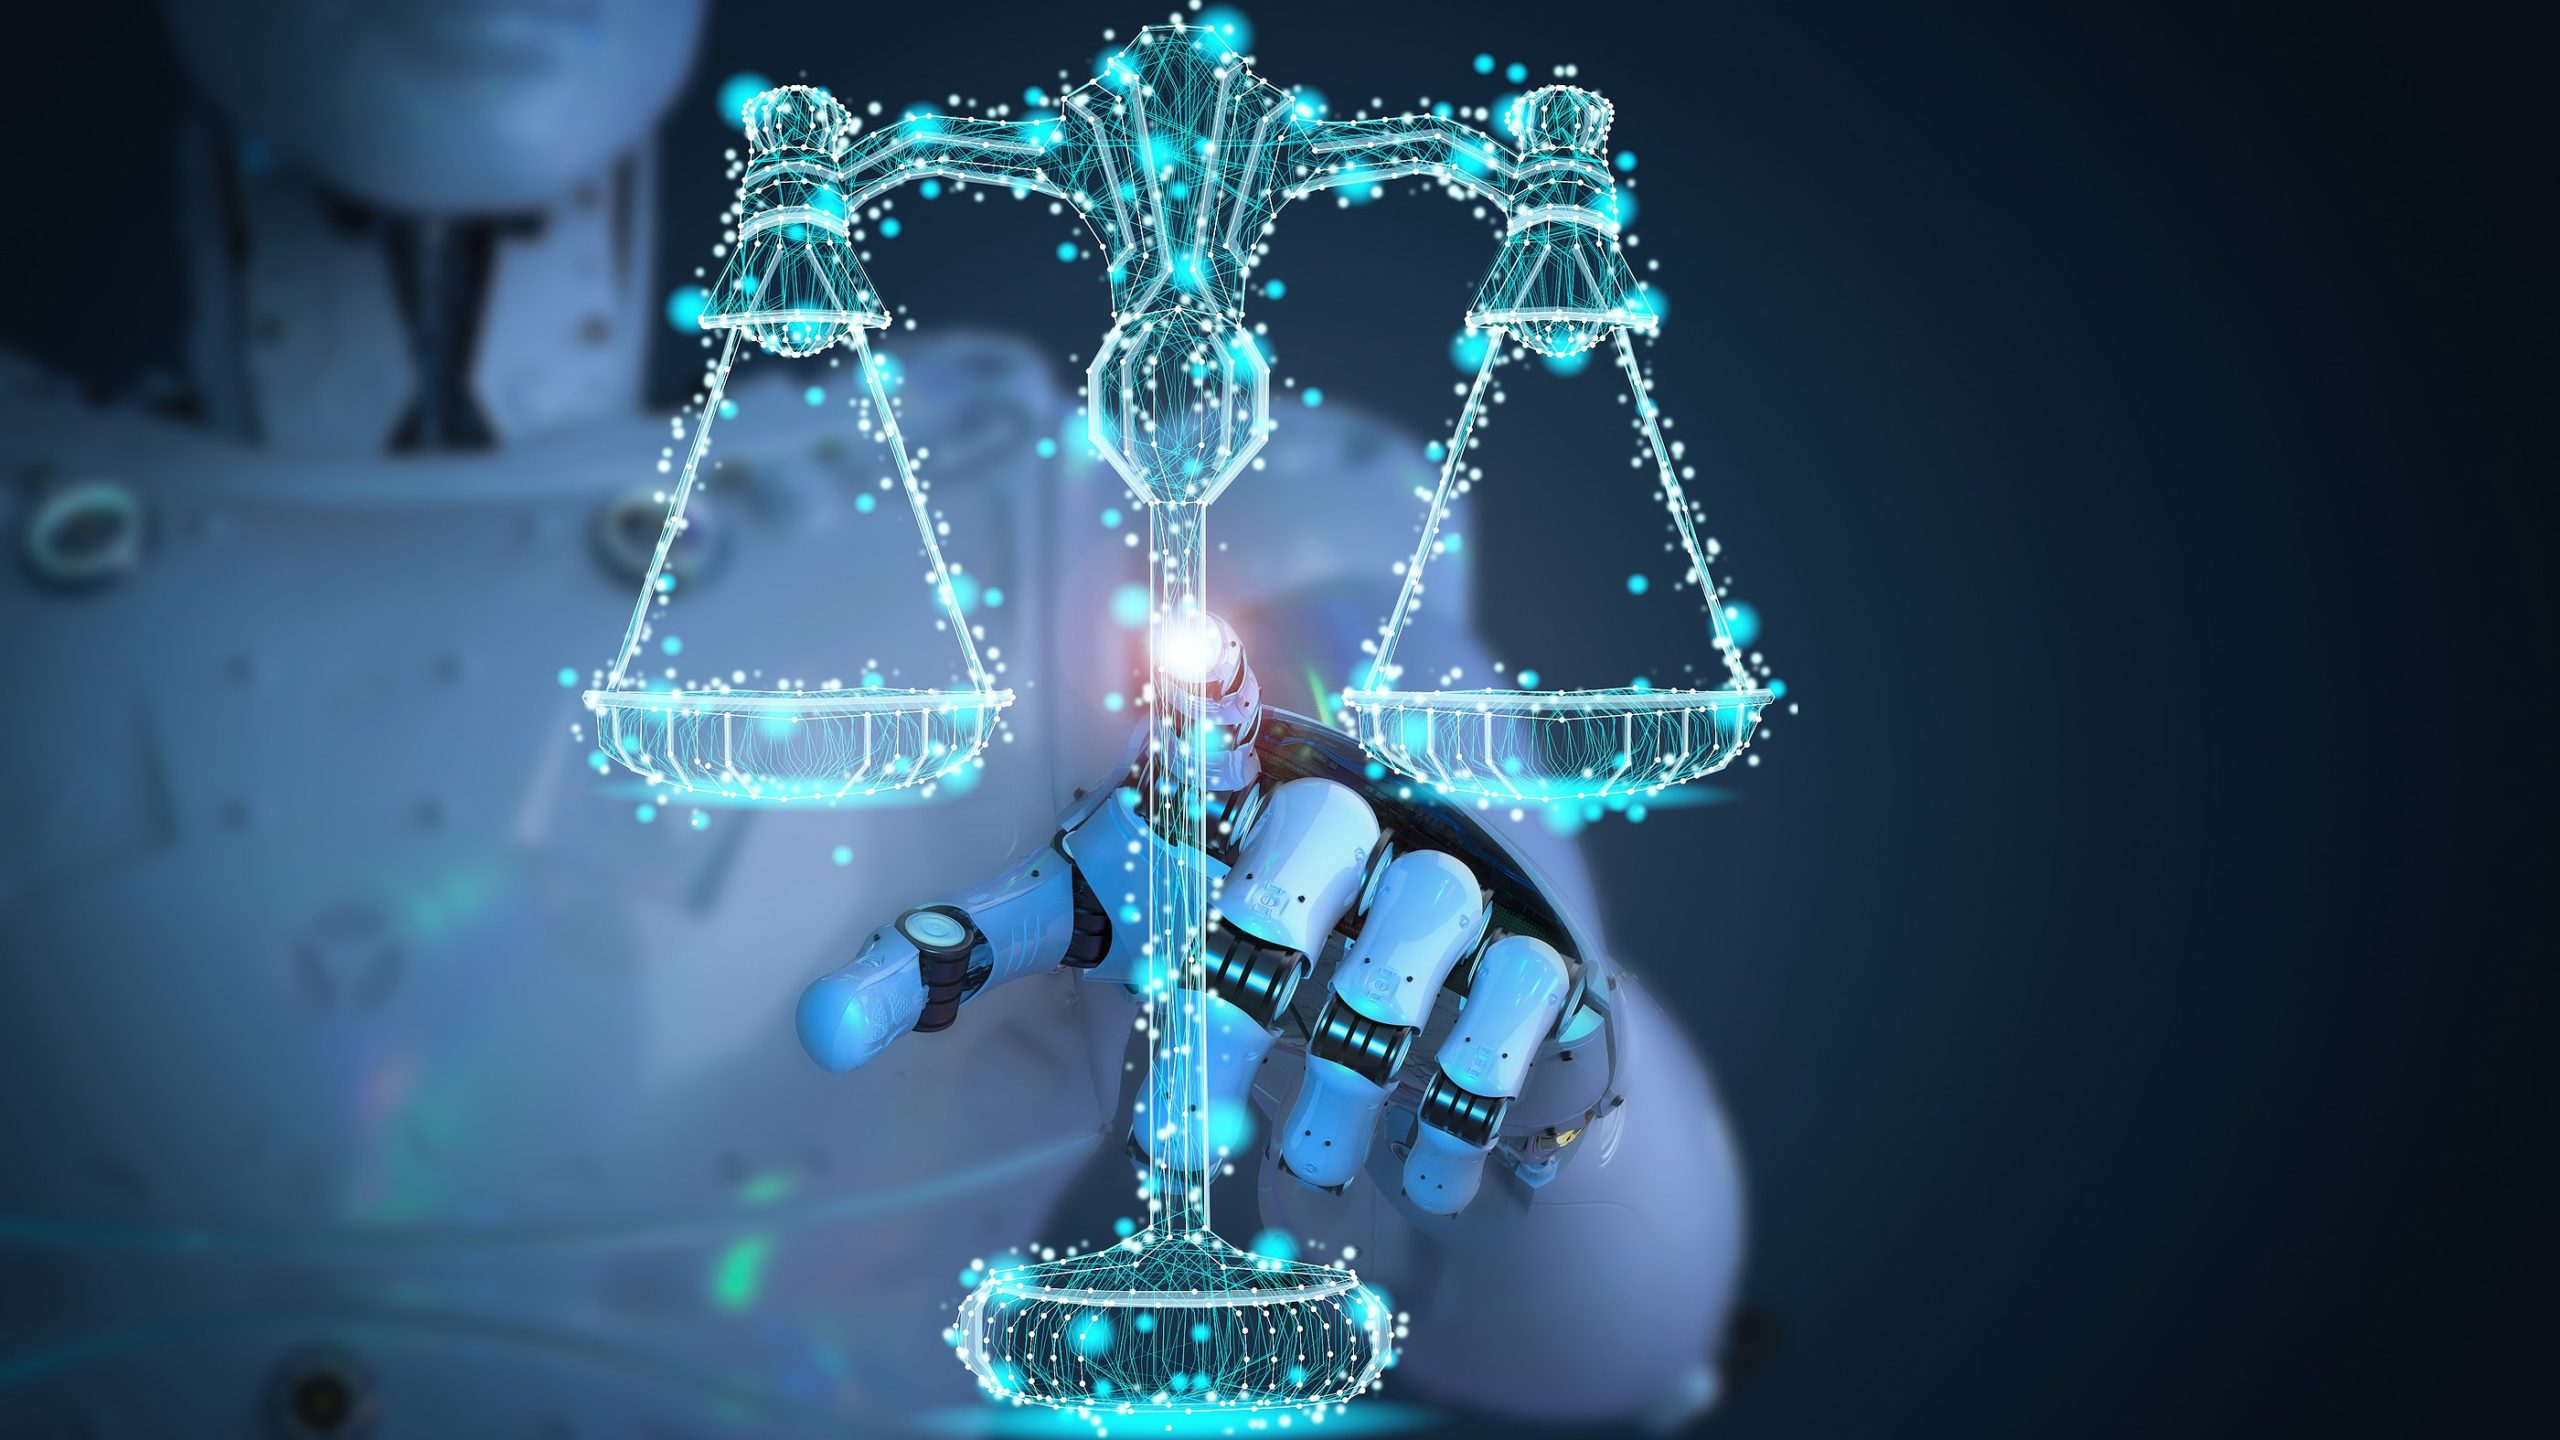 robot pointing to set of scales of justice